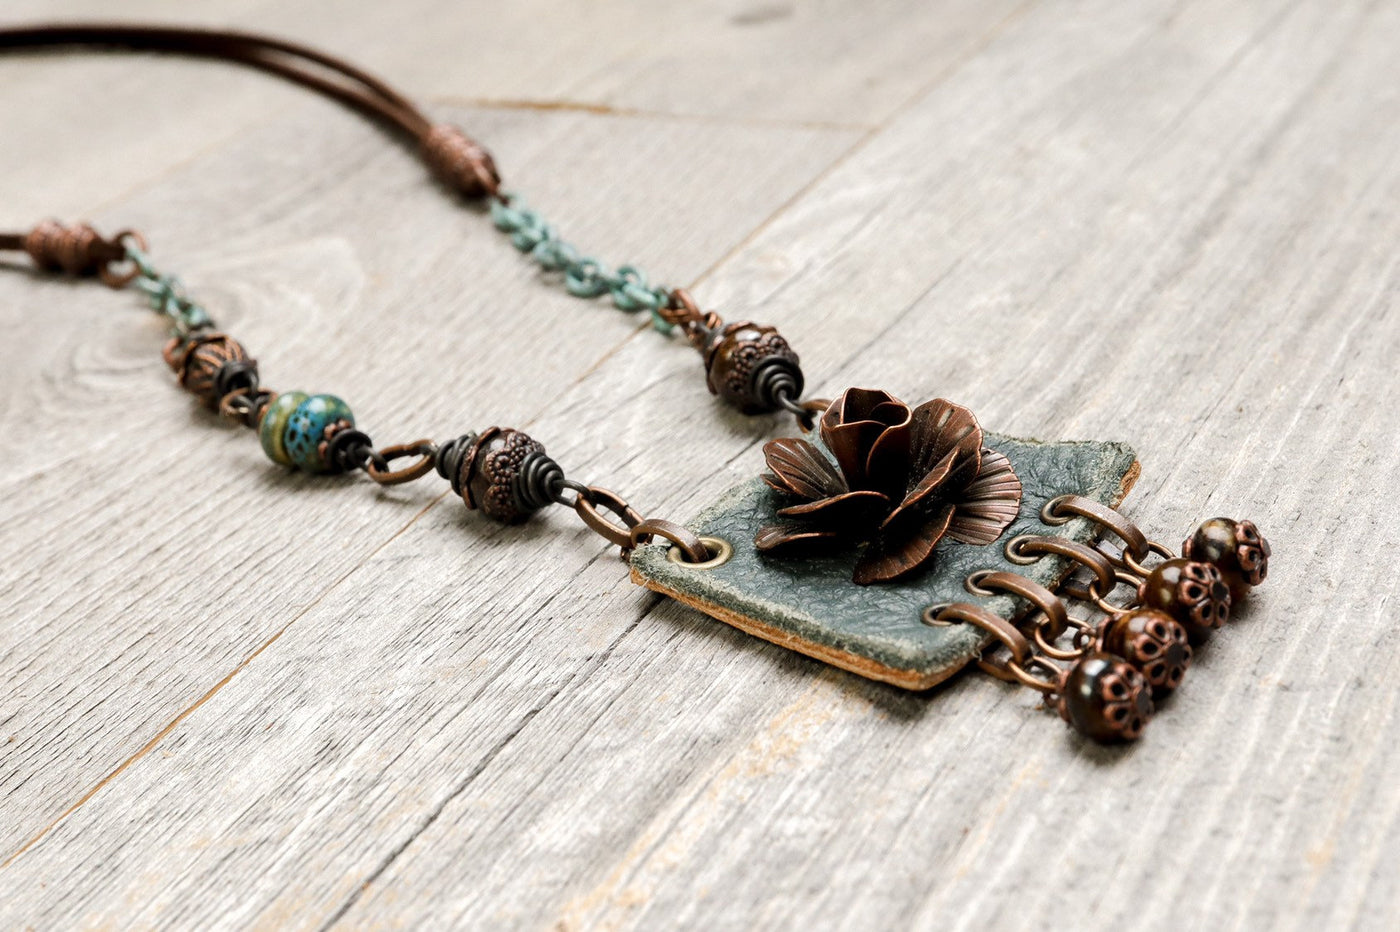 Flower Leather Boho Necklace - Gray Blue Gypsy Bronzite Stone Eclectic Hippie Distressed Gemstone Statement Bohemian Rustic Handmade Jewelry